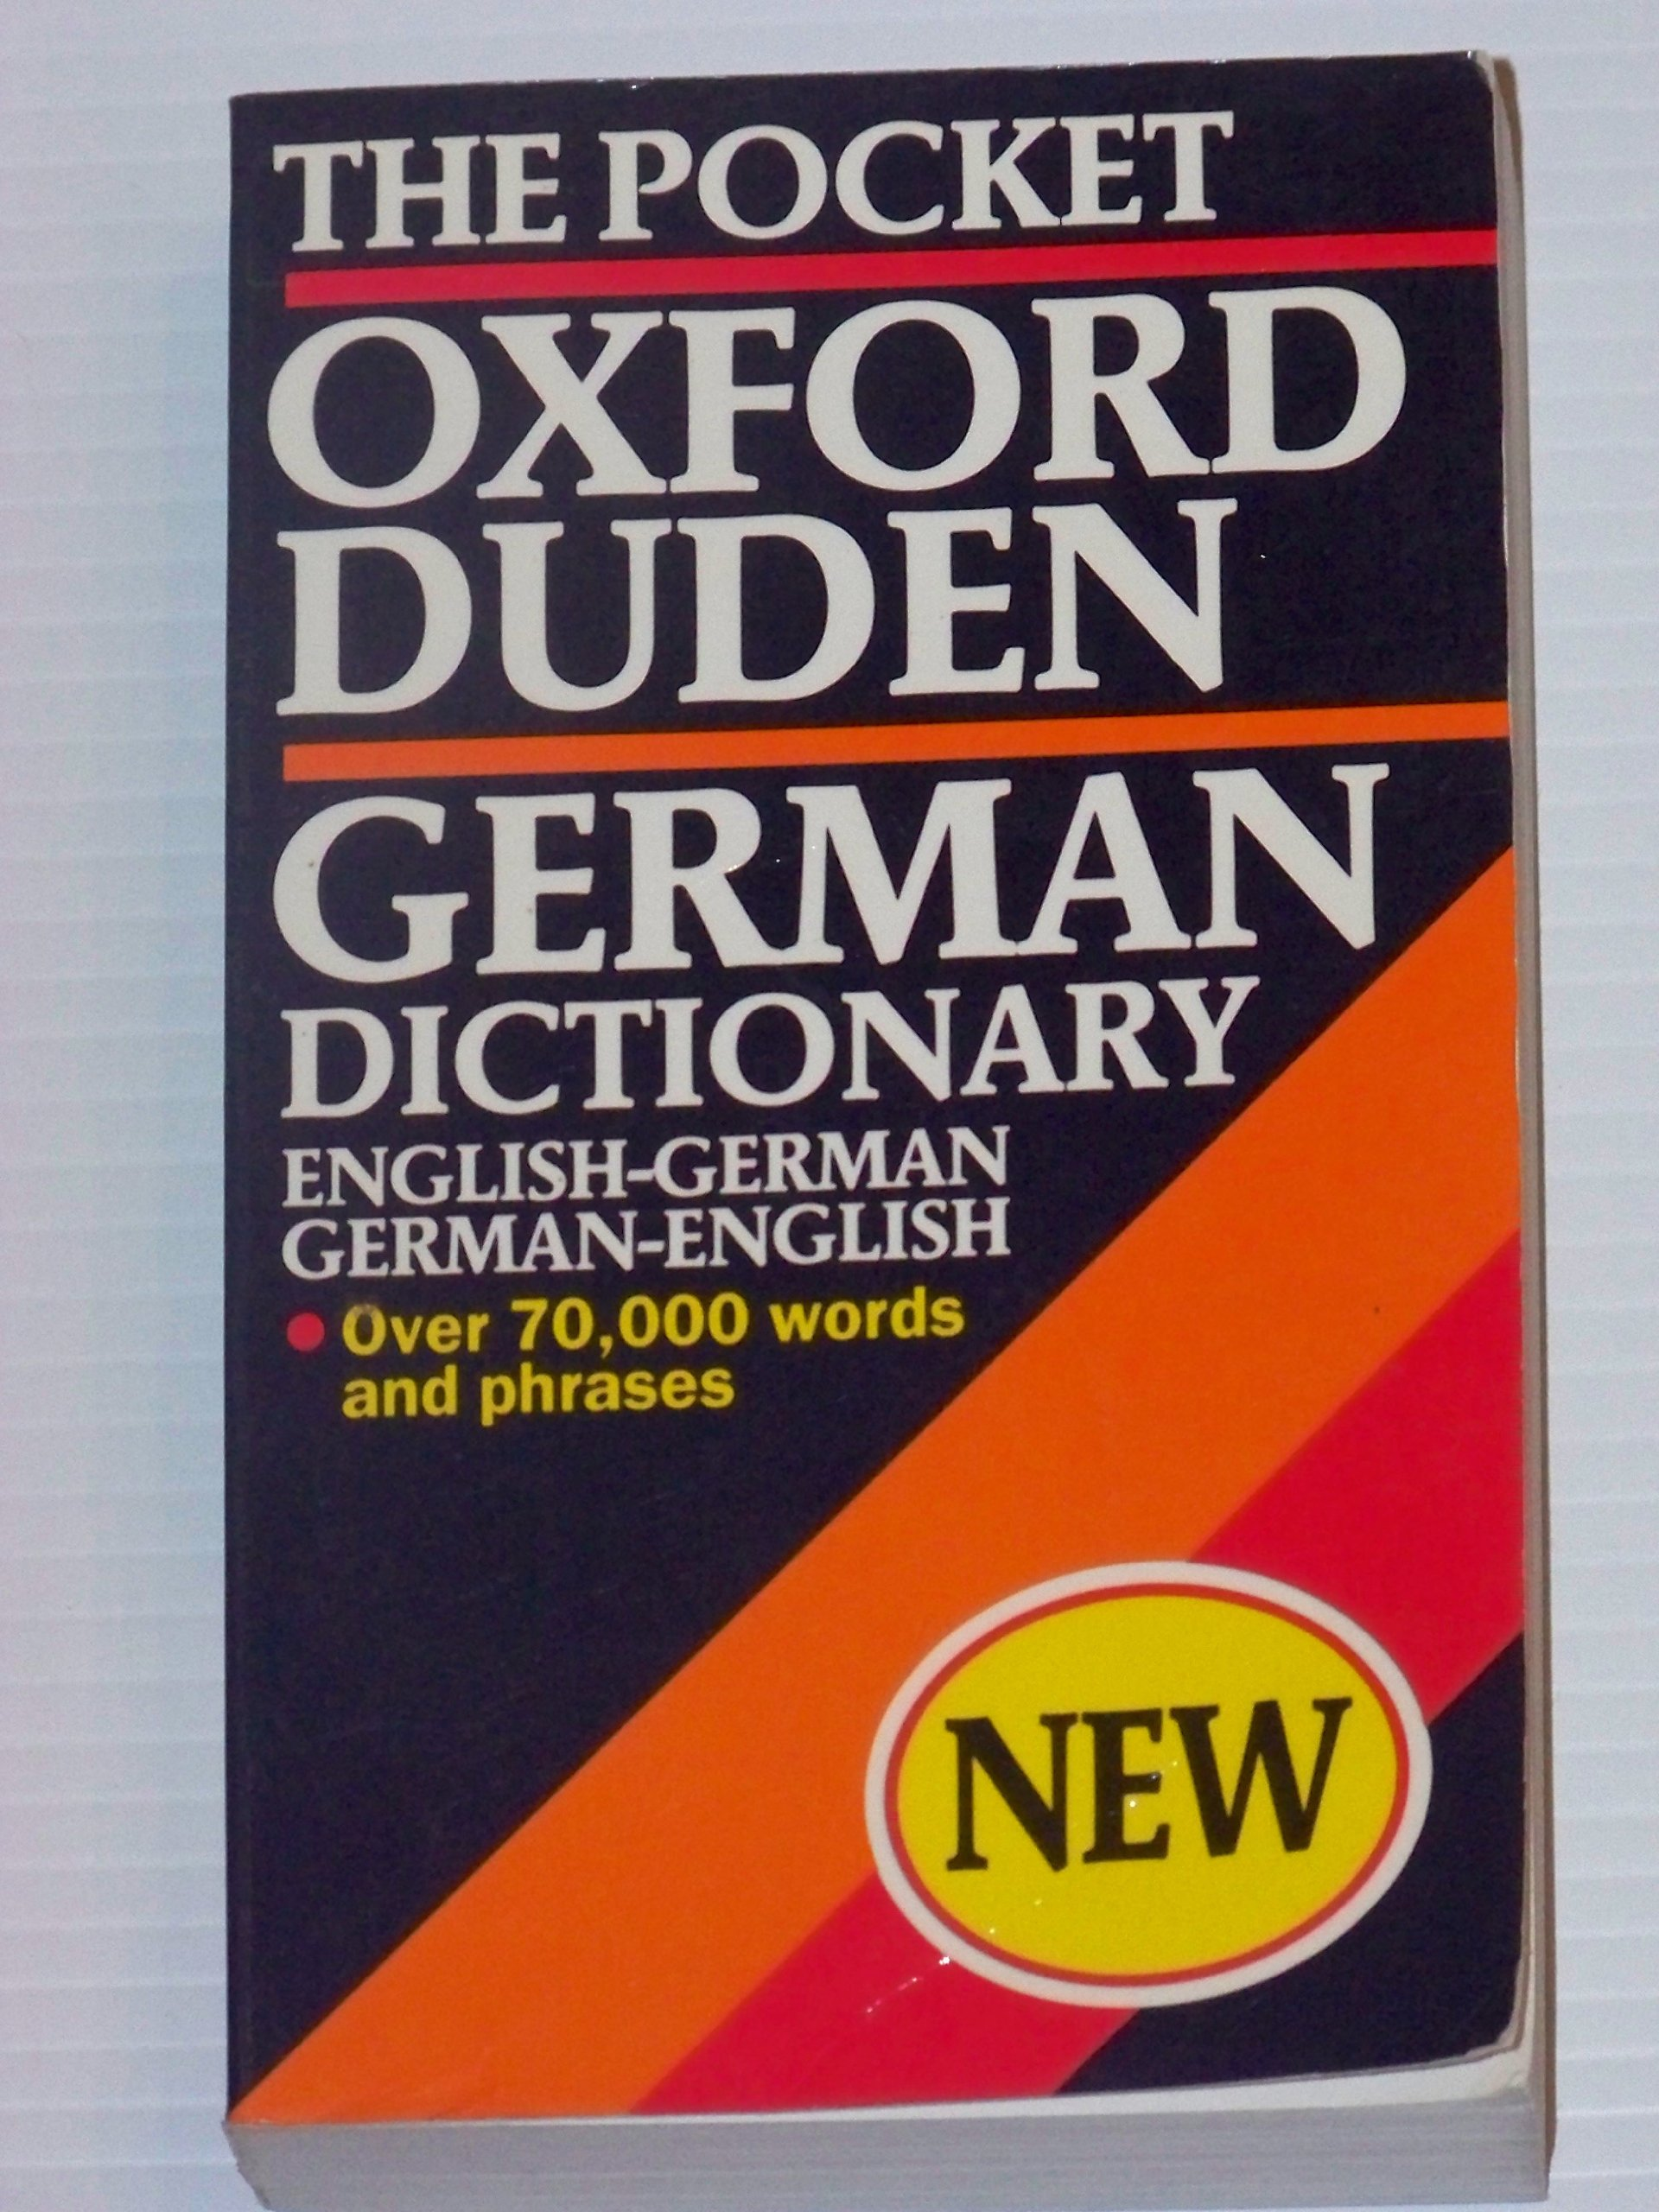 Buy The Pocket Oxford-Duden German Dictionary Book Online at Low Prices in  India | The Pocket Oxford-Duden German Dictionary Reviews & Ratings -  Amazon.in